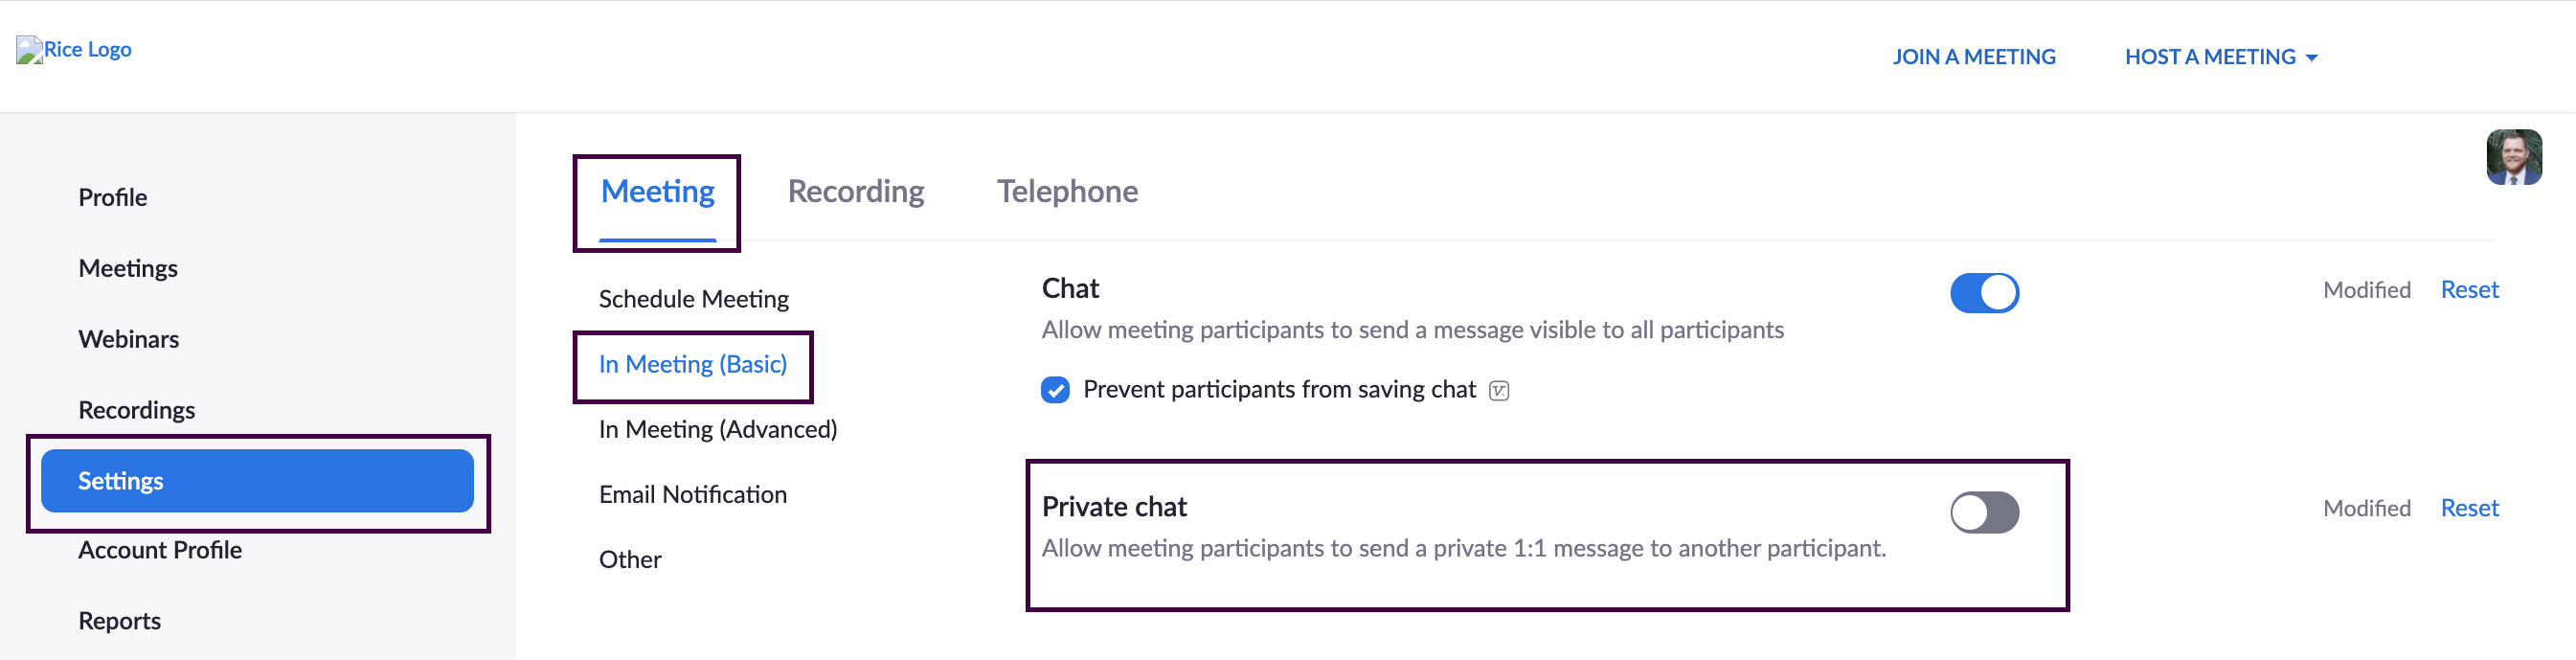 Zoom meeting settings with 'Private chat' disabled.